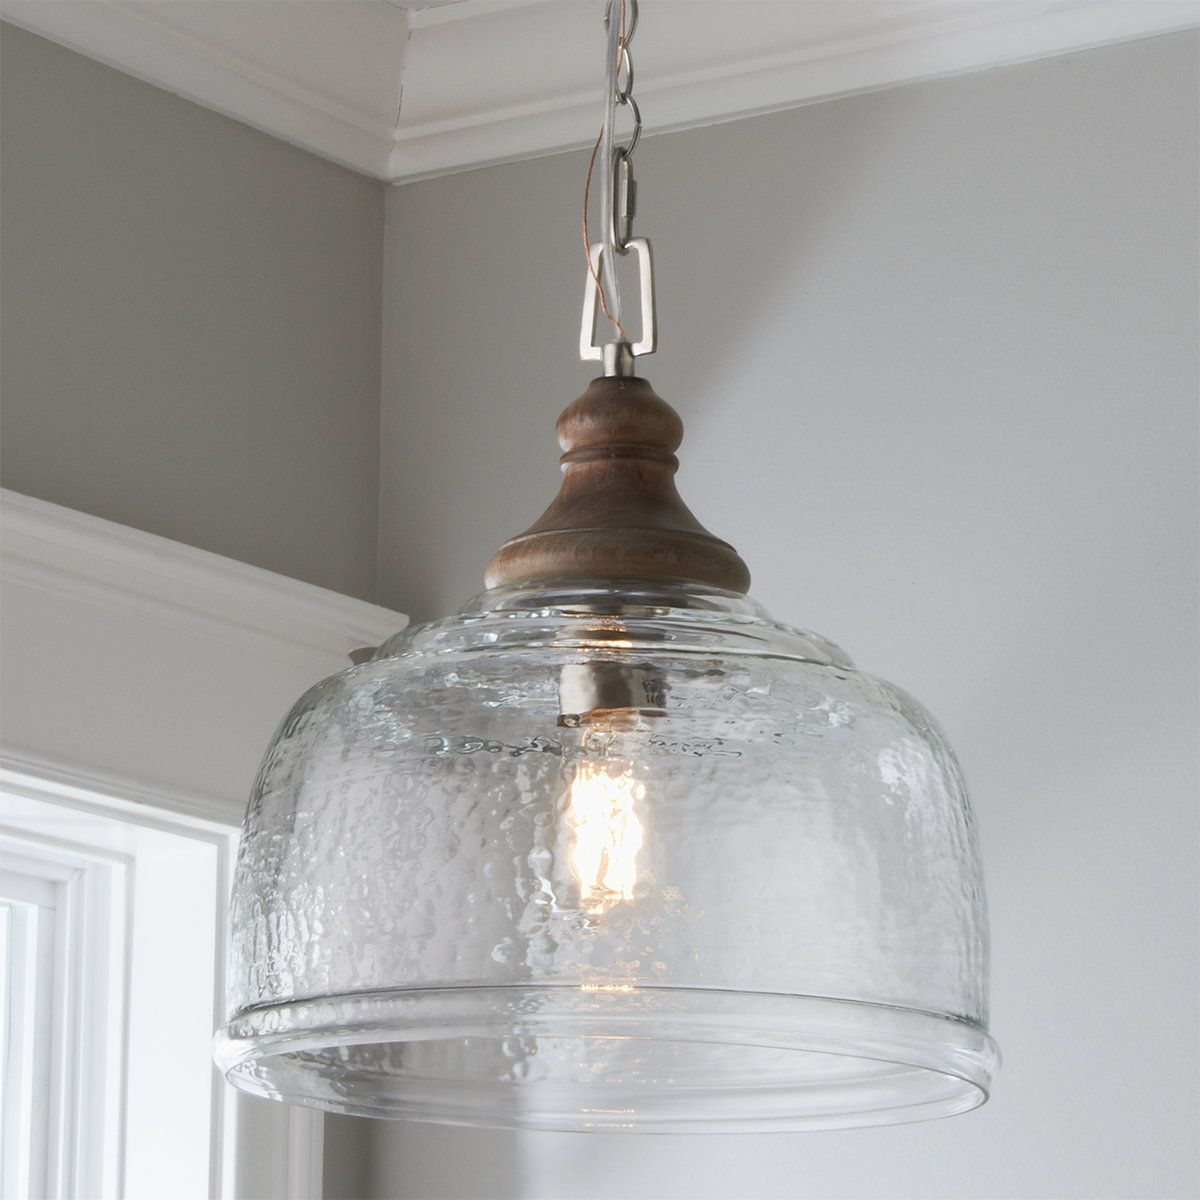 Eclectic and contemporary, this pendant can accommodate any space.  The rippled glass shade elevates the overall fixture.  The organic, gray washed wood cap provides a natural element to this unique pendant .